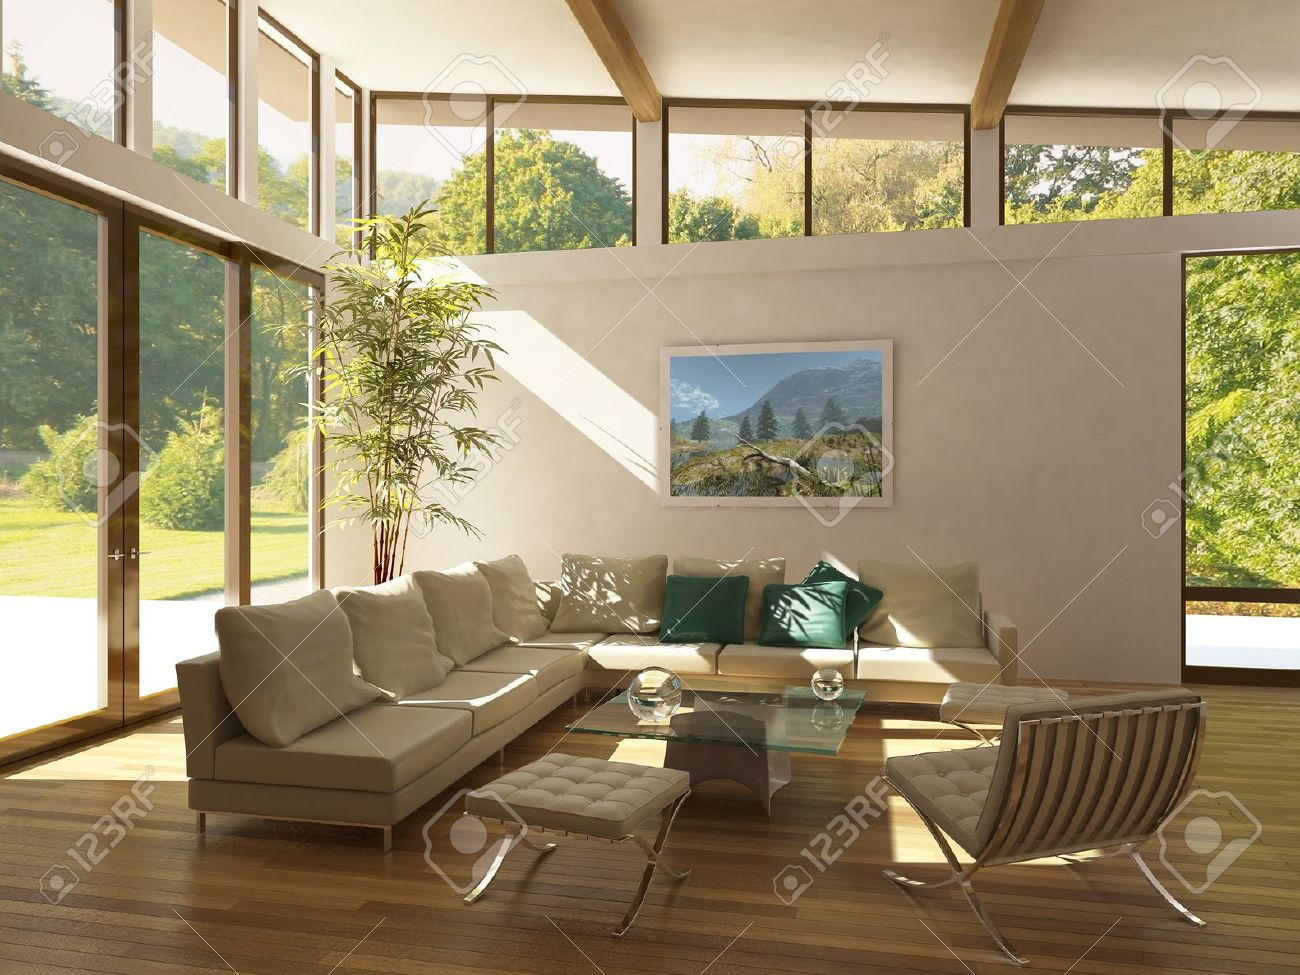 Modern Living Room With Large Windows, Wooden Floor And Plant. Green And  Trees